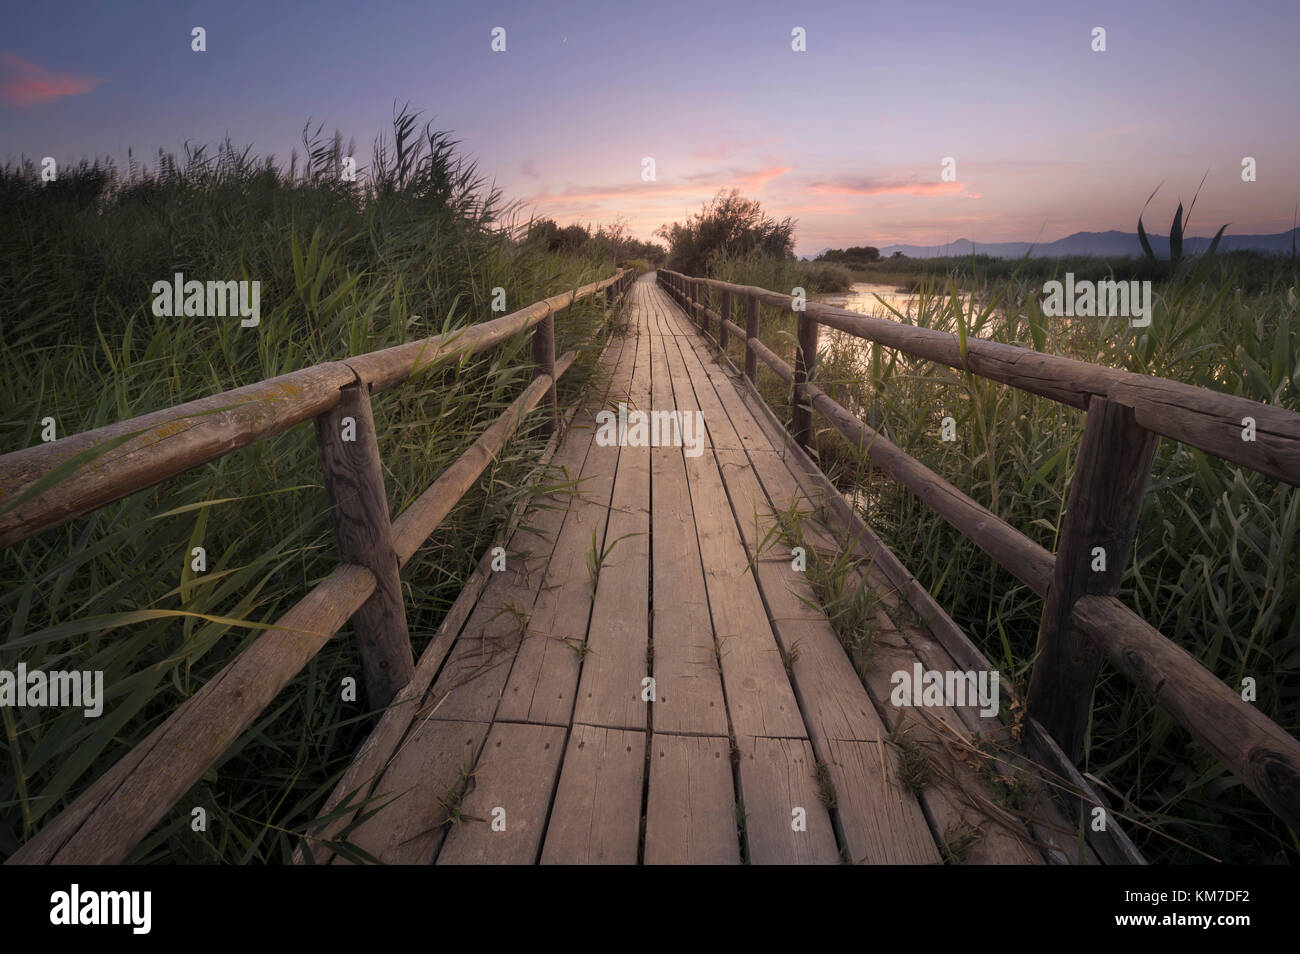 Fine art photography of a wooden path at sunset in a marsh in Alicante province, Spain. Stock Photo